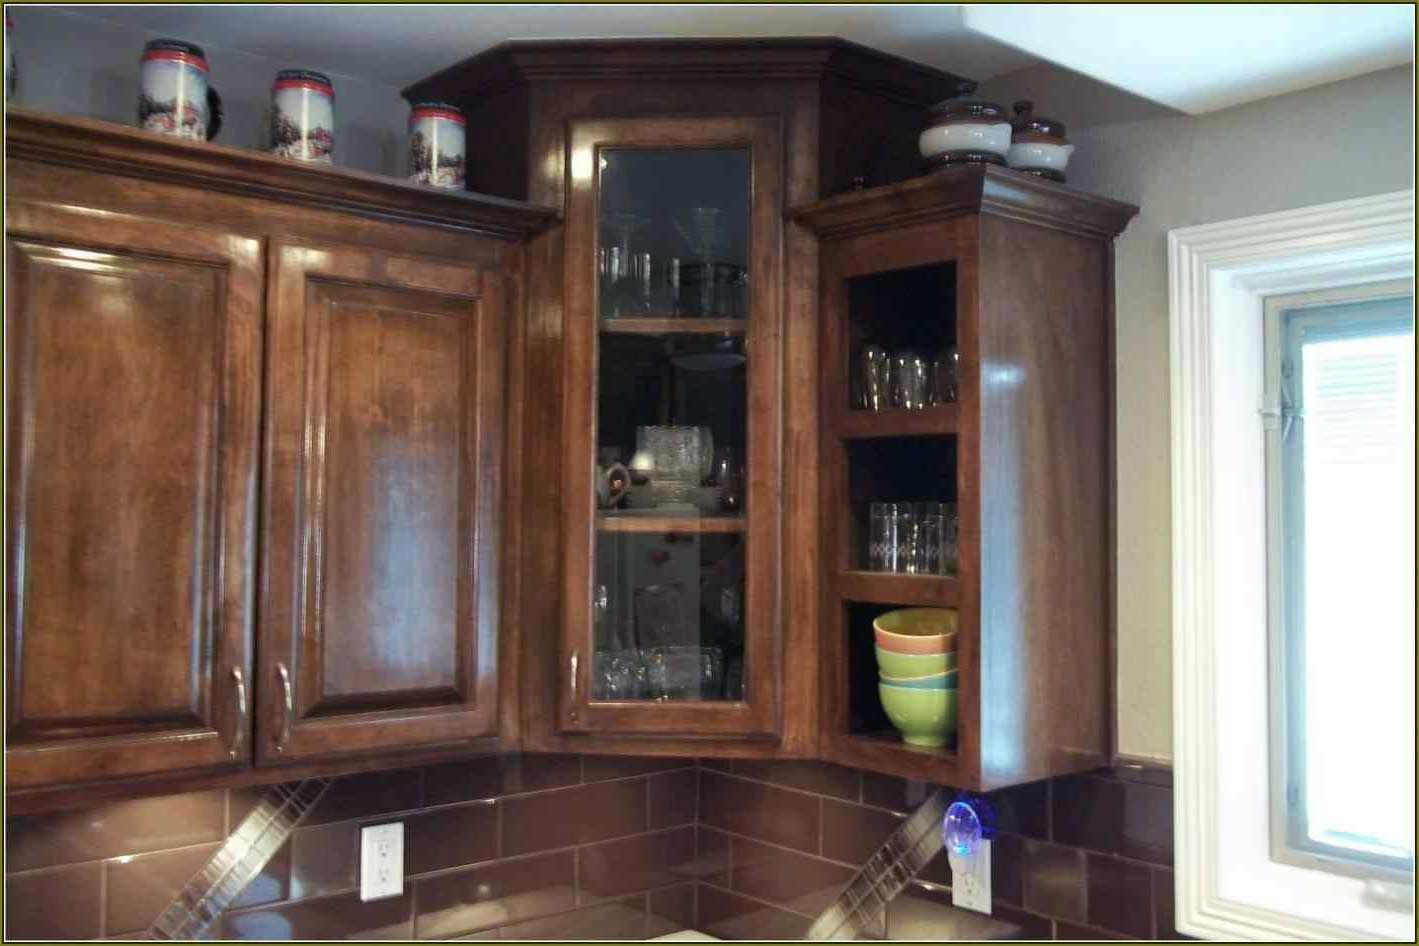 Cabinets With Glass Doors Lovely Cabinets With Glass Doors For This Season Best C Corner Kitchen Cabinet Glass Kitchen Cabinet Doors Upper Kitchen Cabinets